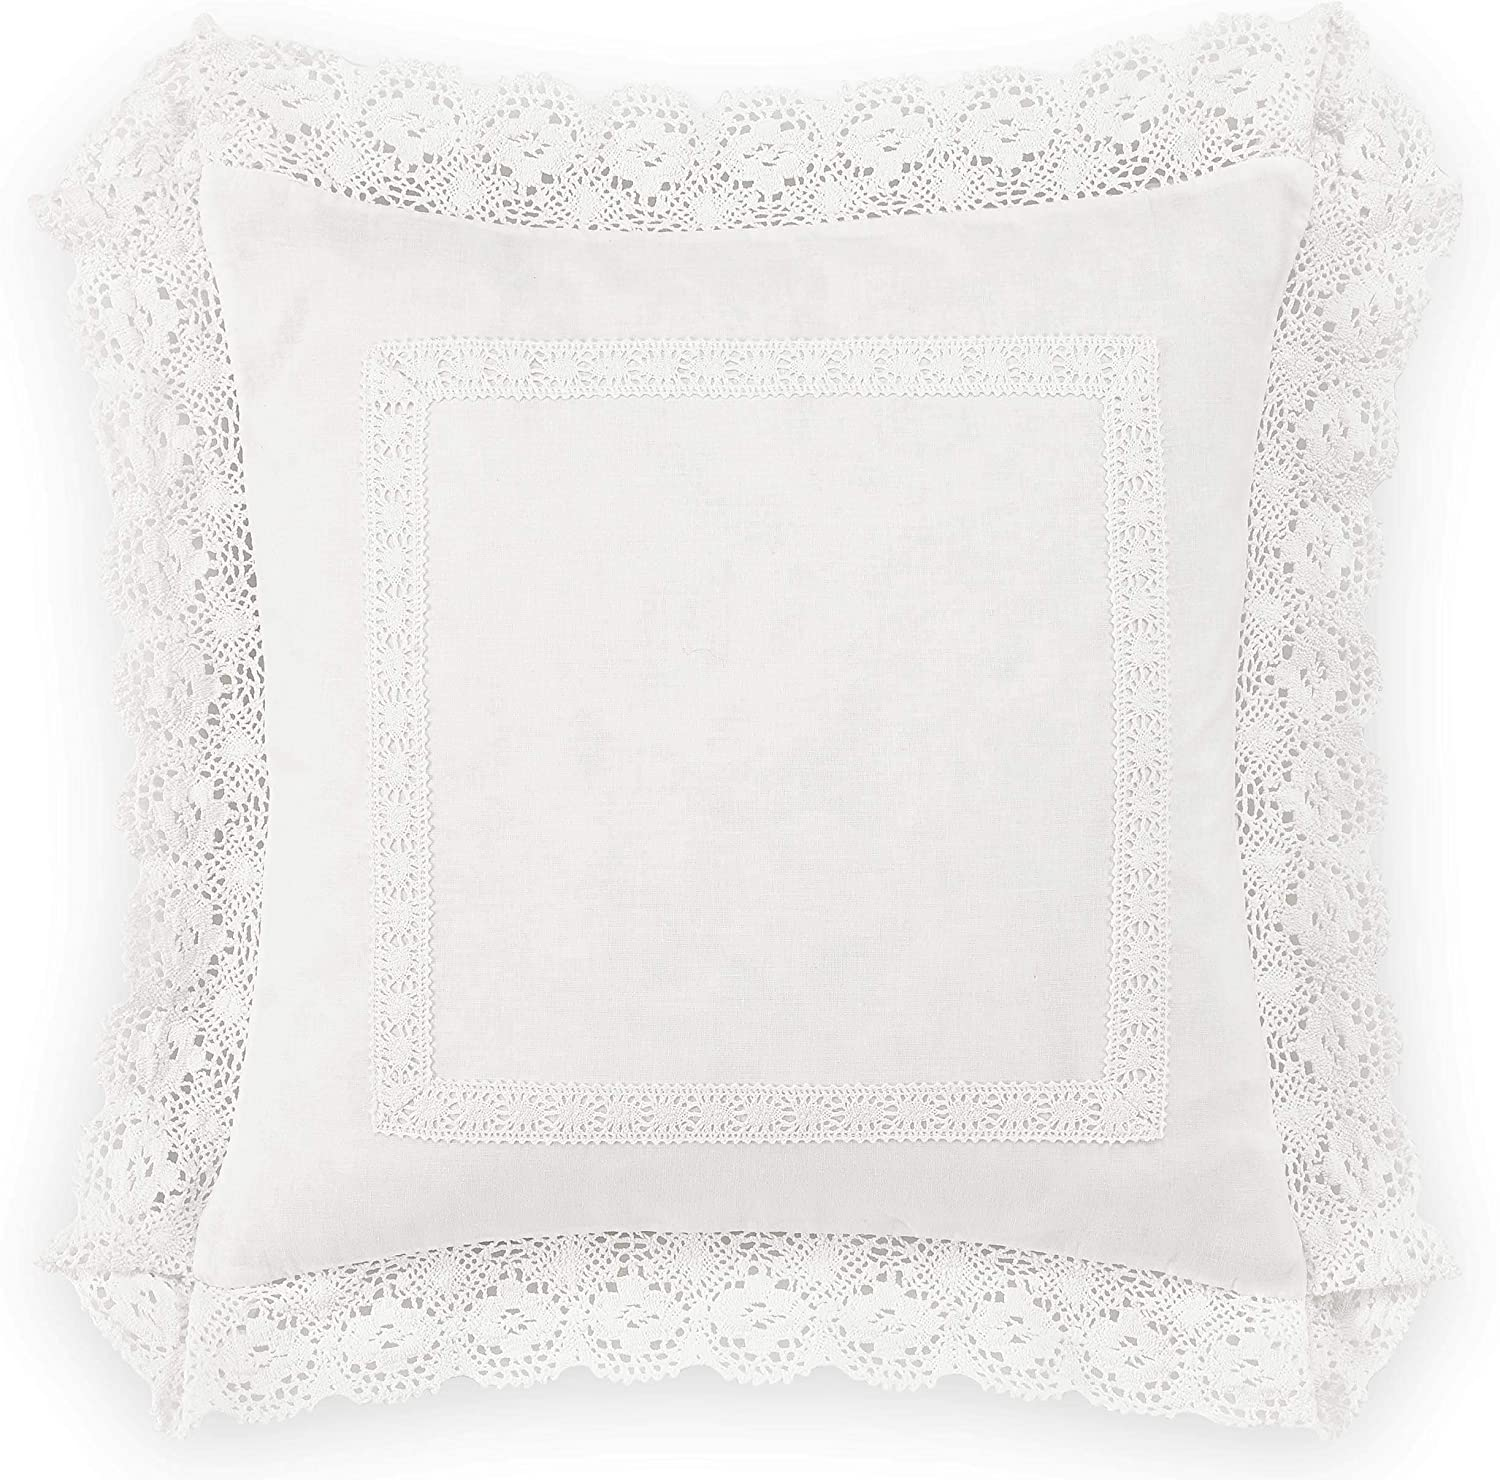 Laura Ashley Home Annabella Collection Perfect Decorative Throw Pillow, Premium Designer Quality, Decorative Pillow for Bedroom Living Room and Home Décor, 18x18, White